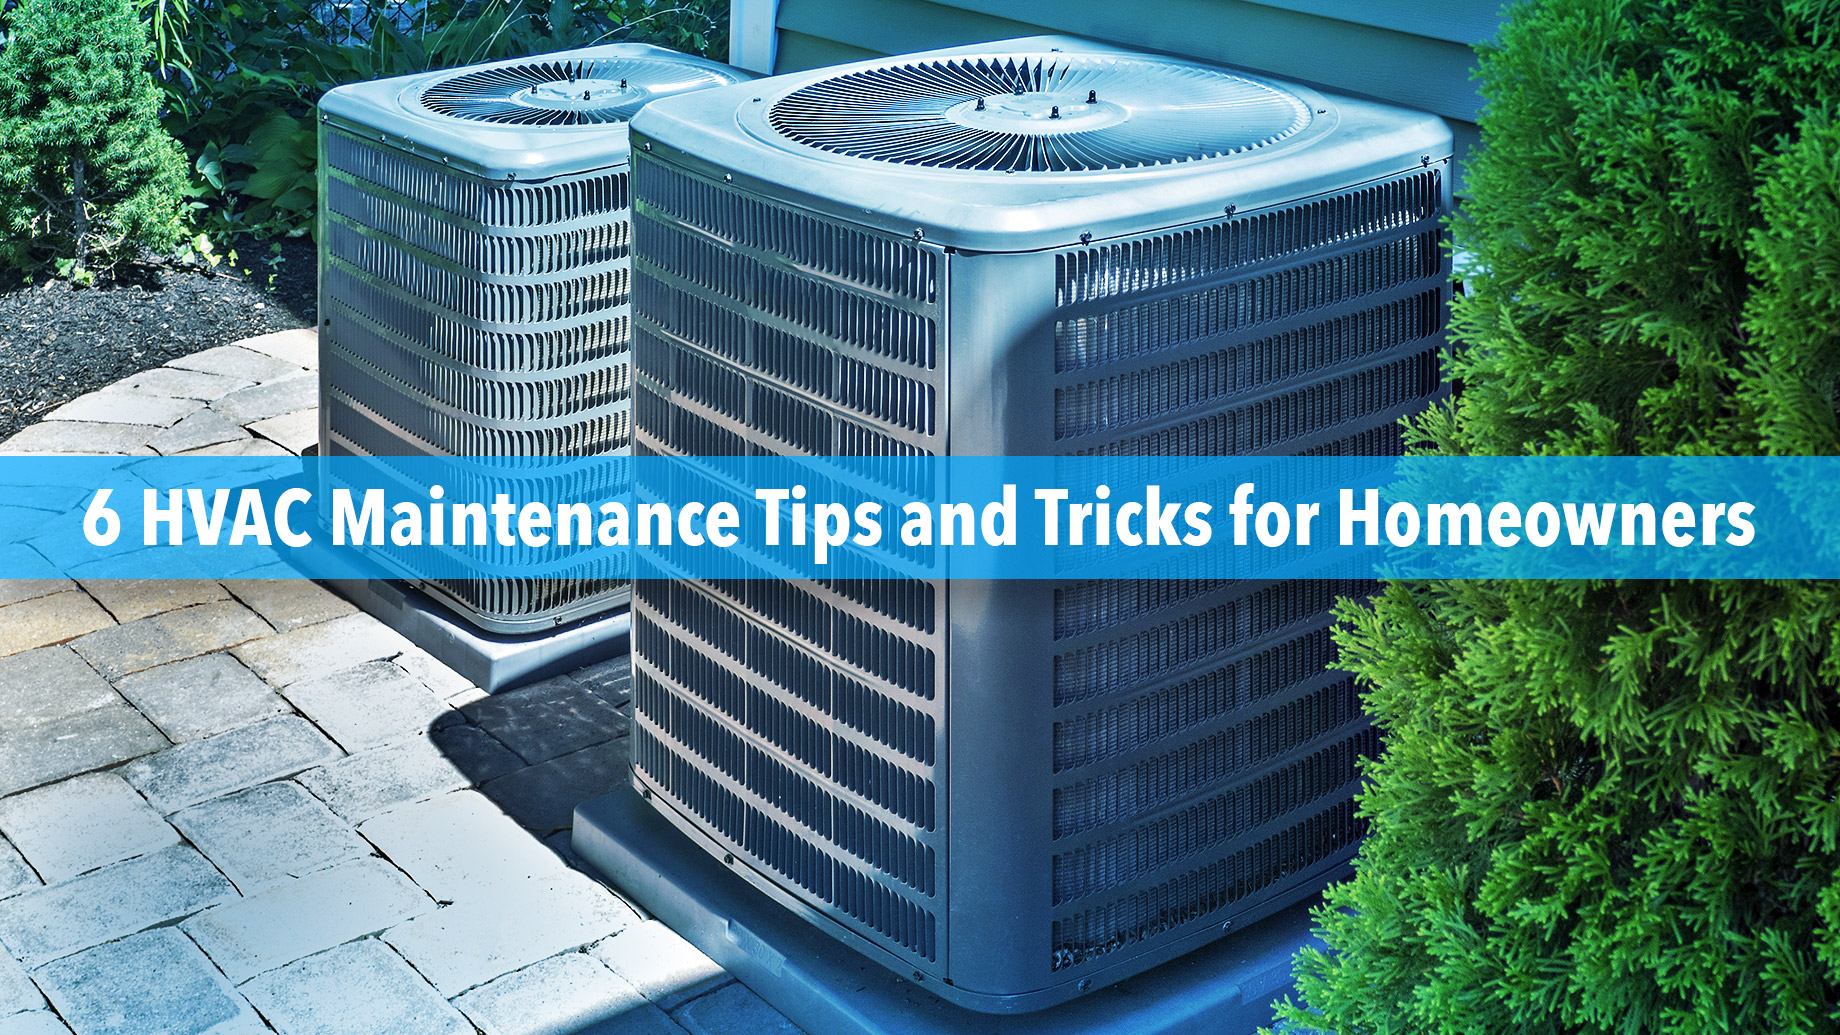 6 HVAC Maintenance Tips and Tricks for Homeowners